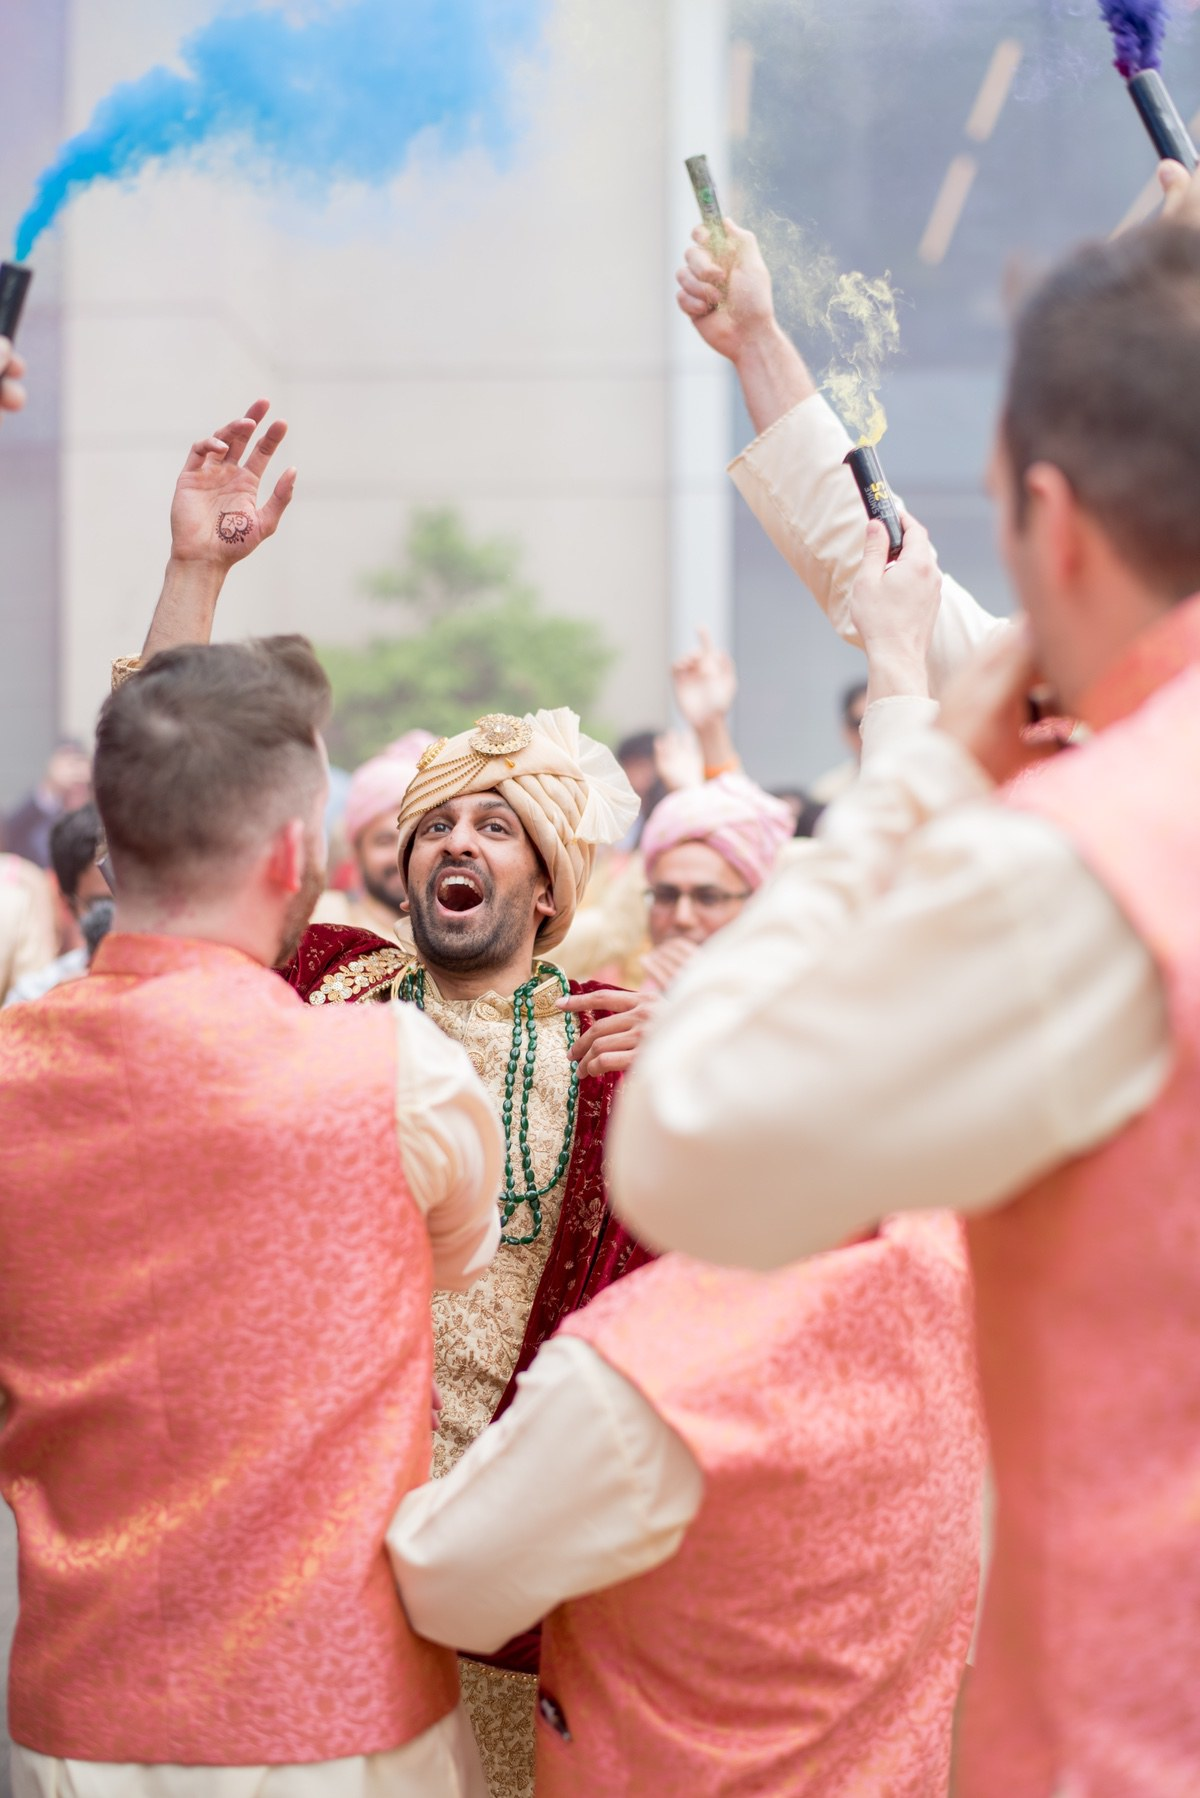 Le_Cape_Weddings_-_Serena_-_Chicago_South_Asian_Wedding_-_Baraat_--23.jpg